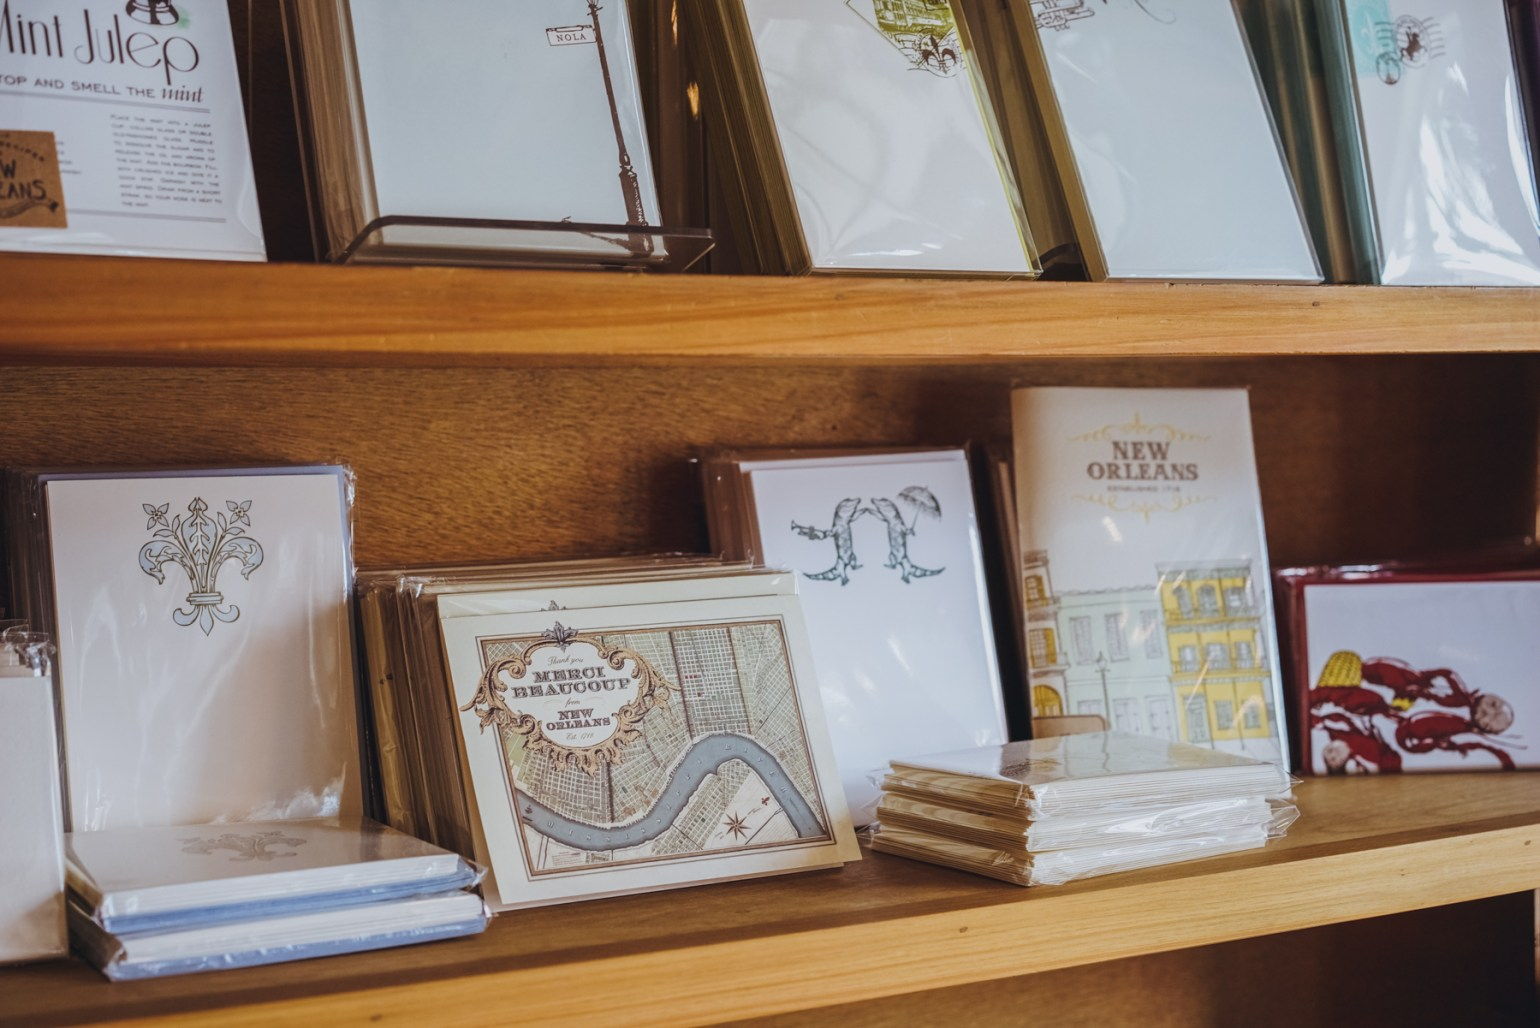 House-made cards and other paper items with a real New Orleans flair are part of the charm of Scriptura, the stationary store at 5423 Magazine St. They also offer custom wedding and event invitations, stationary and thank you cards.